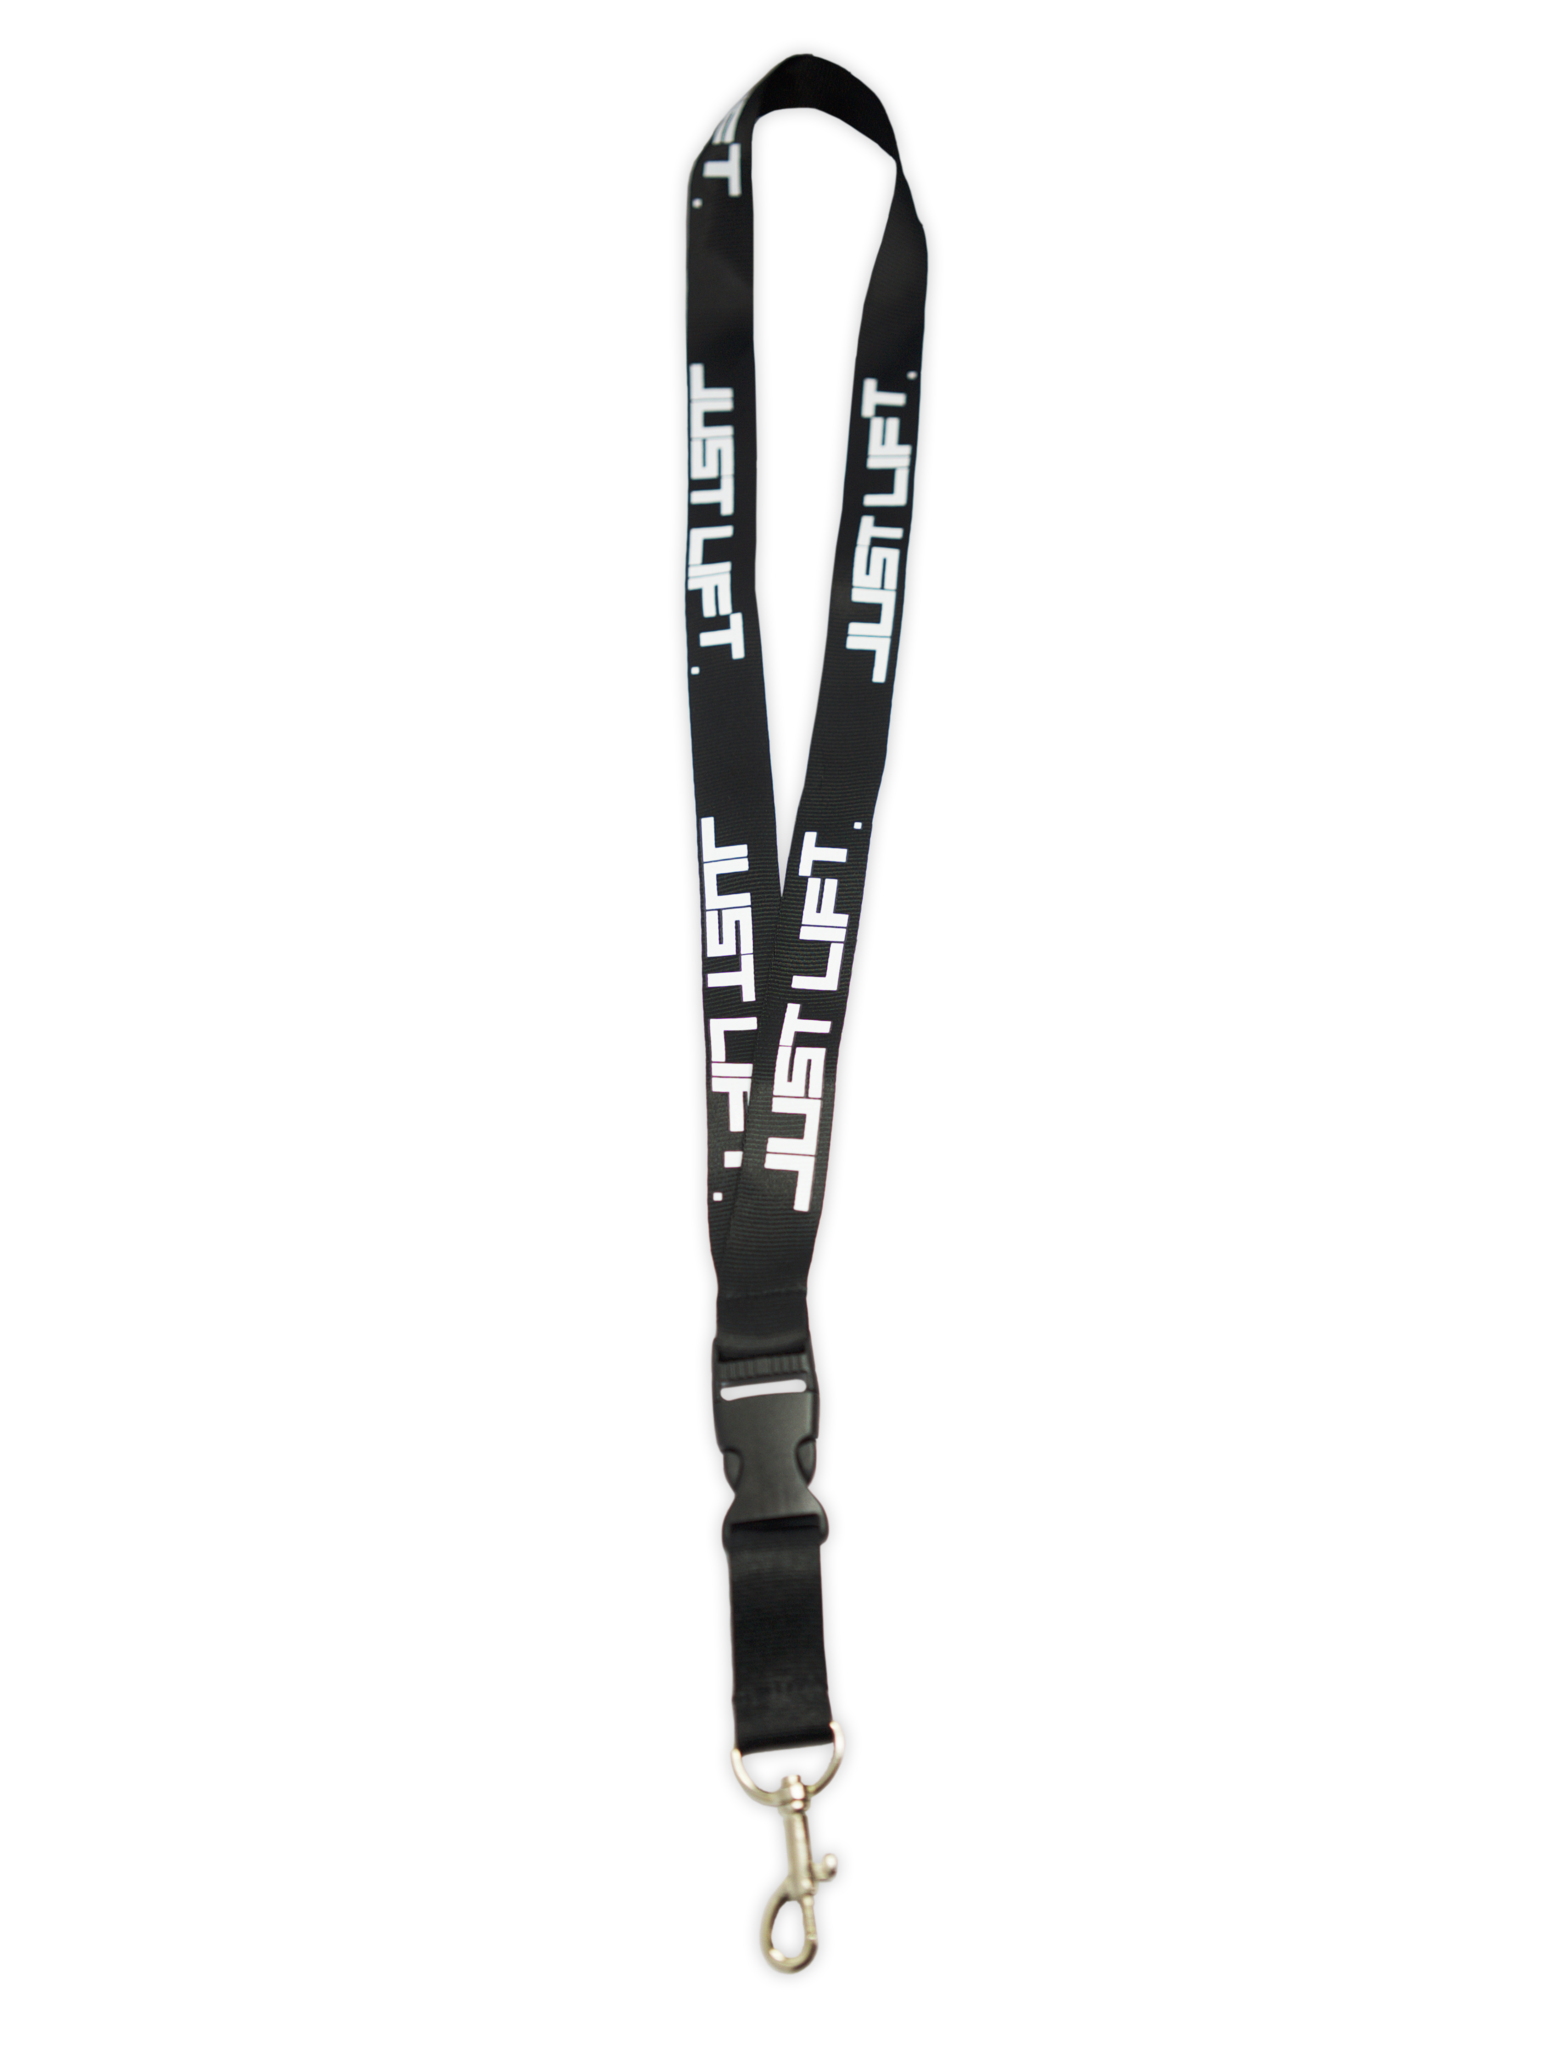 Just Lift. Lanyard/Key Chain holder (Black)